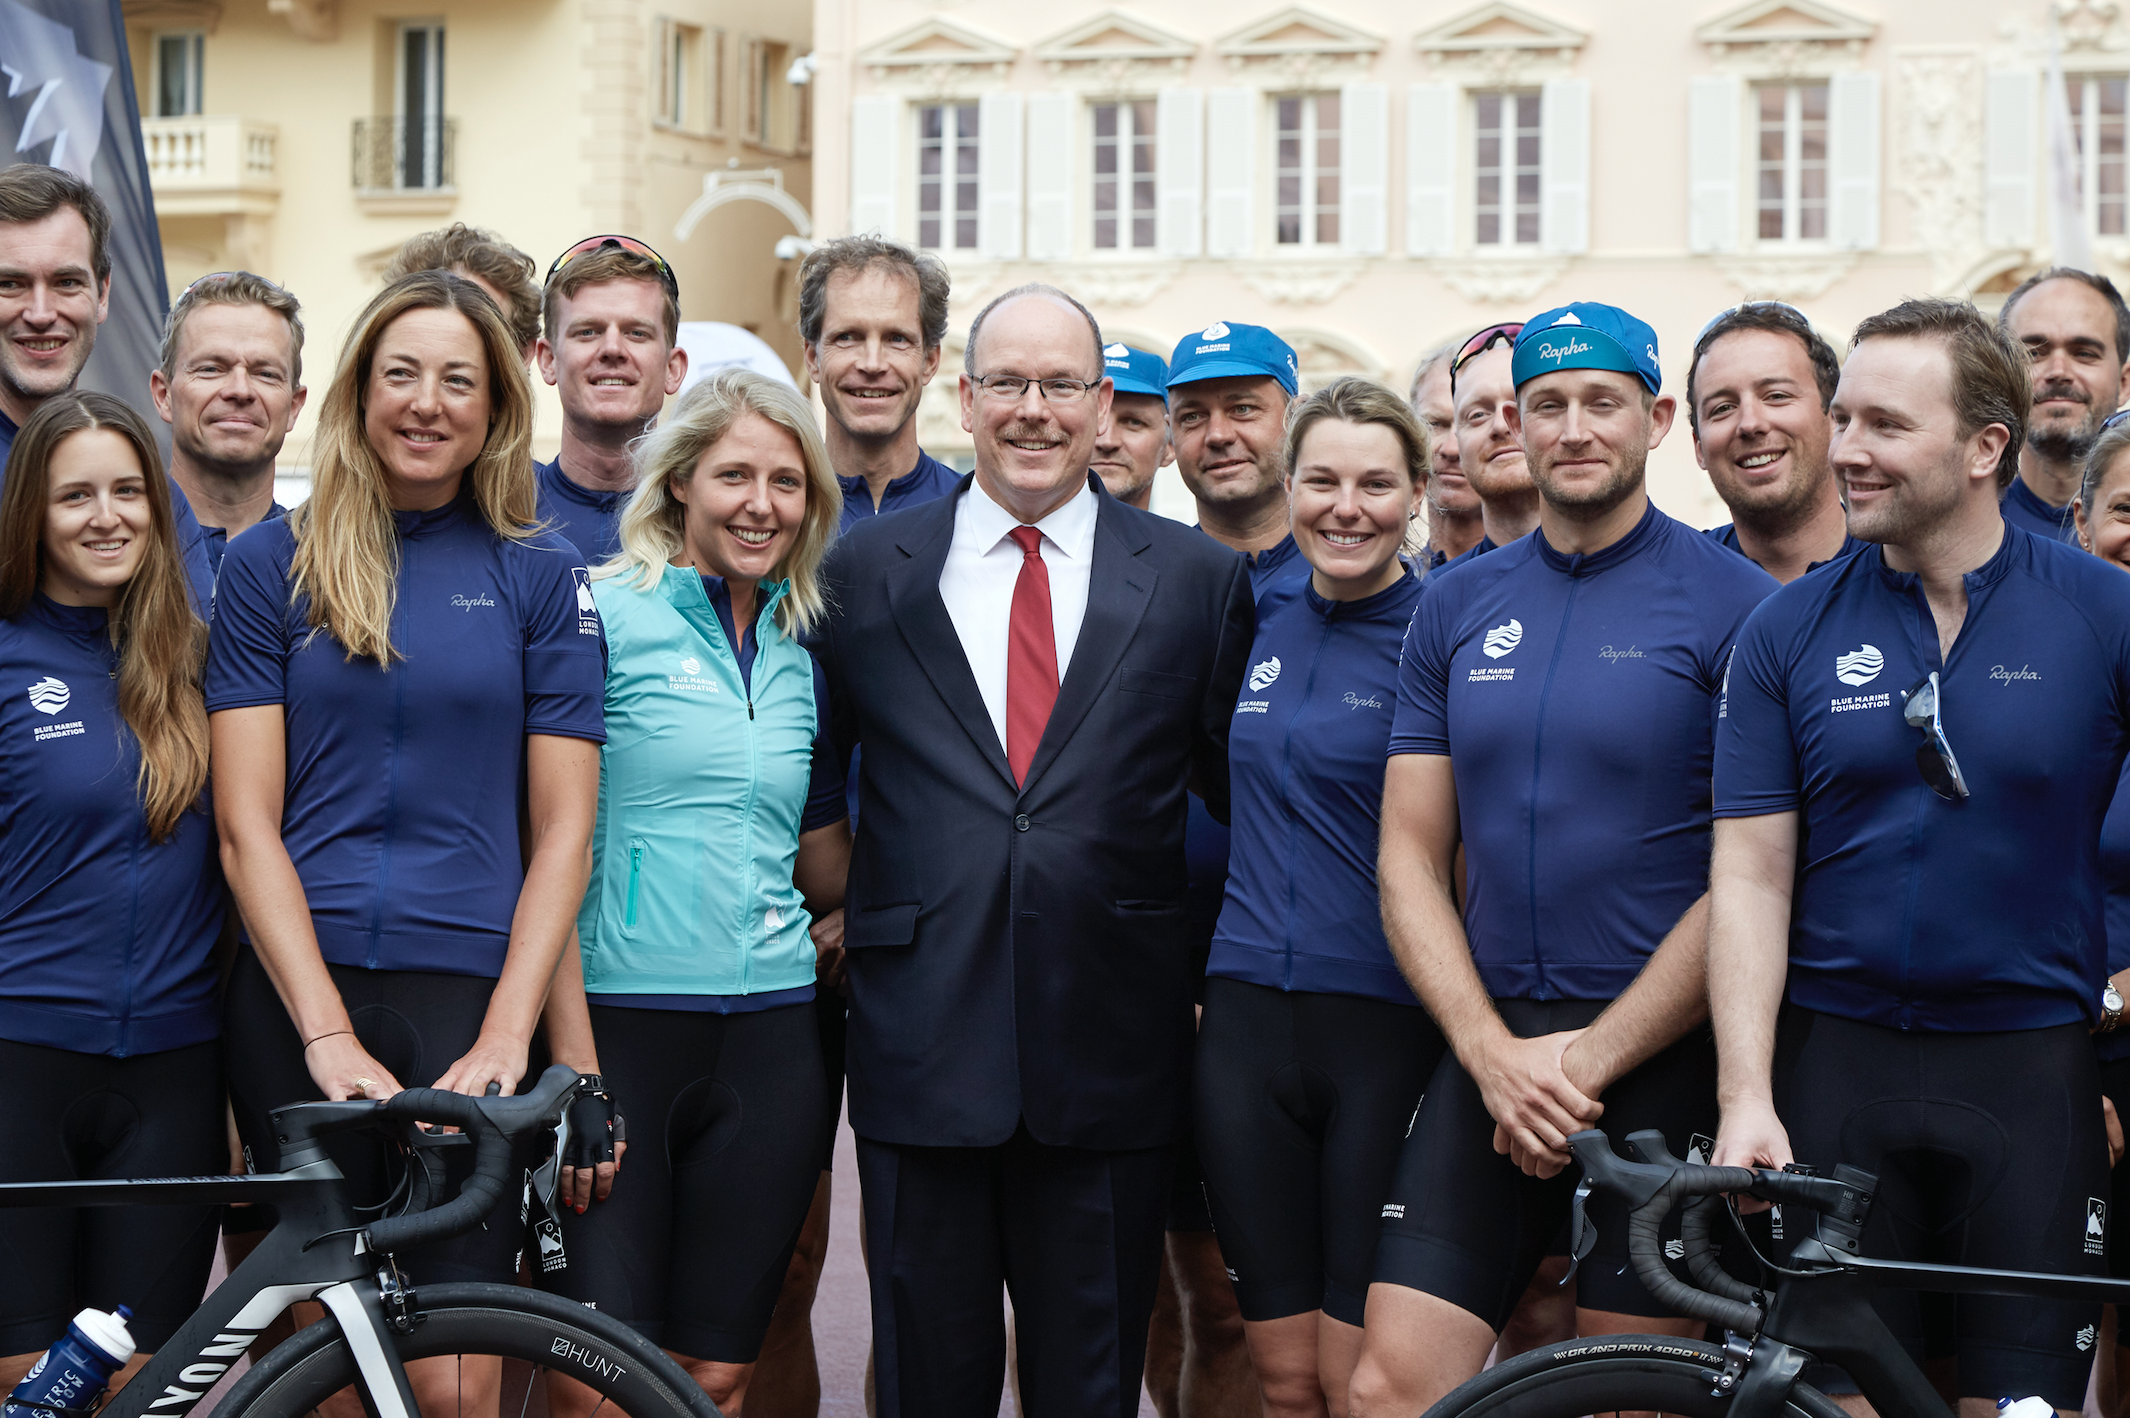 HSH Prince Albert with the cyclists at the finish line. Photo: Blue Marine Foundation